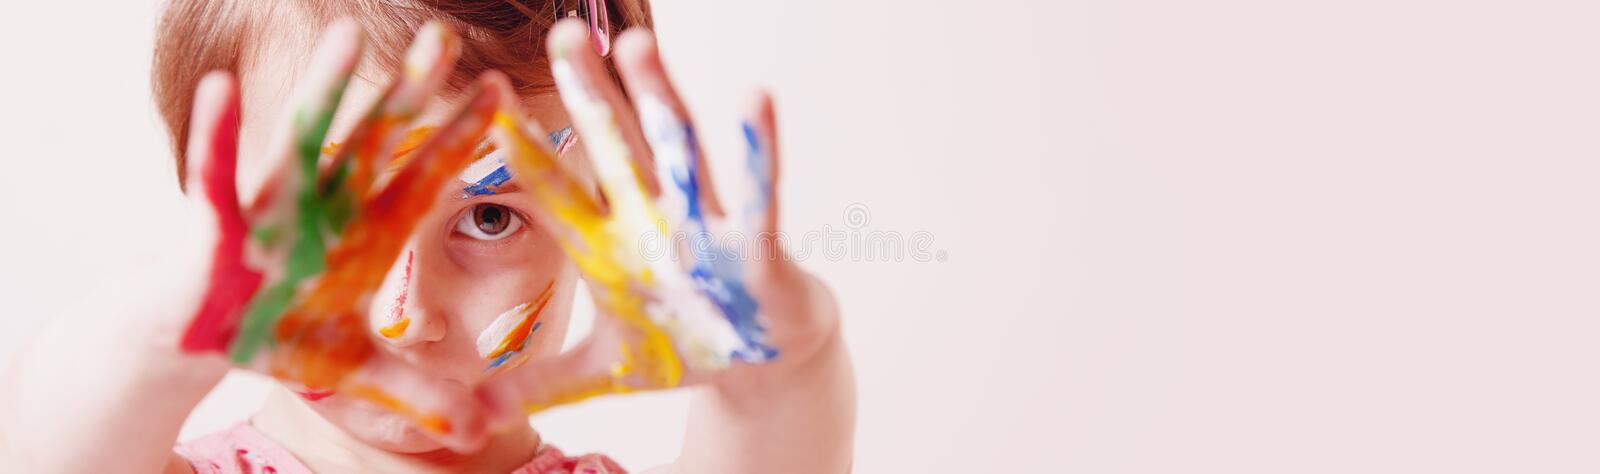 Close up little cute girl with children`s colorful makeup showing painted hands. Happy childhood and art concept. Selective focus stock image